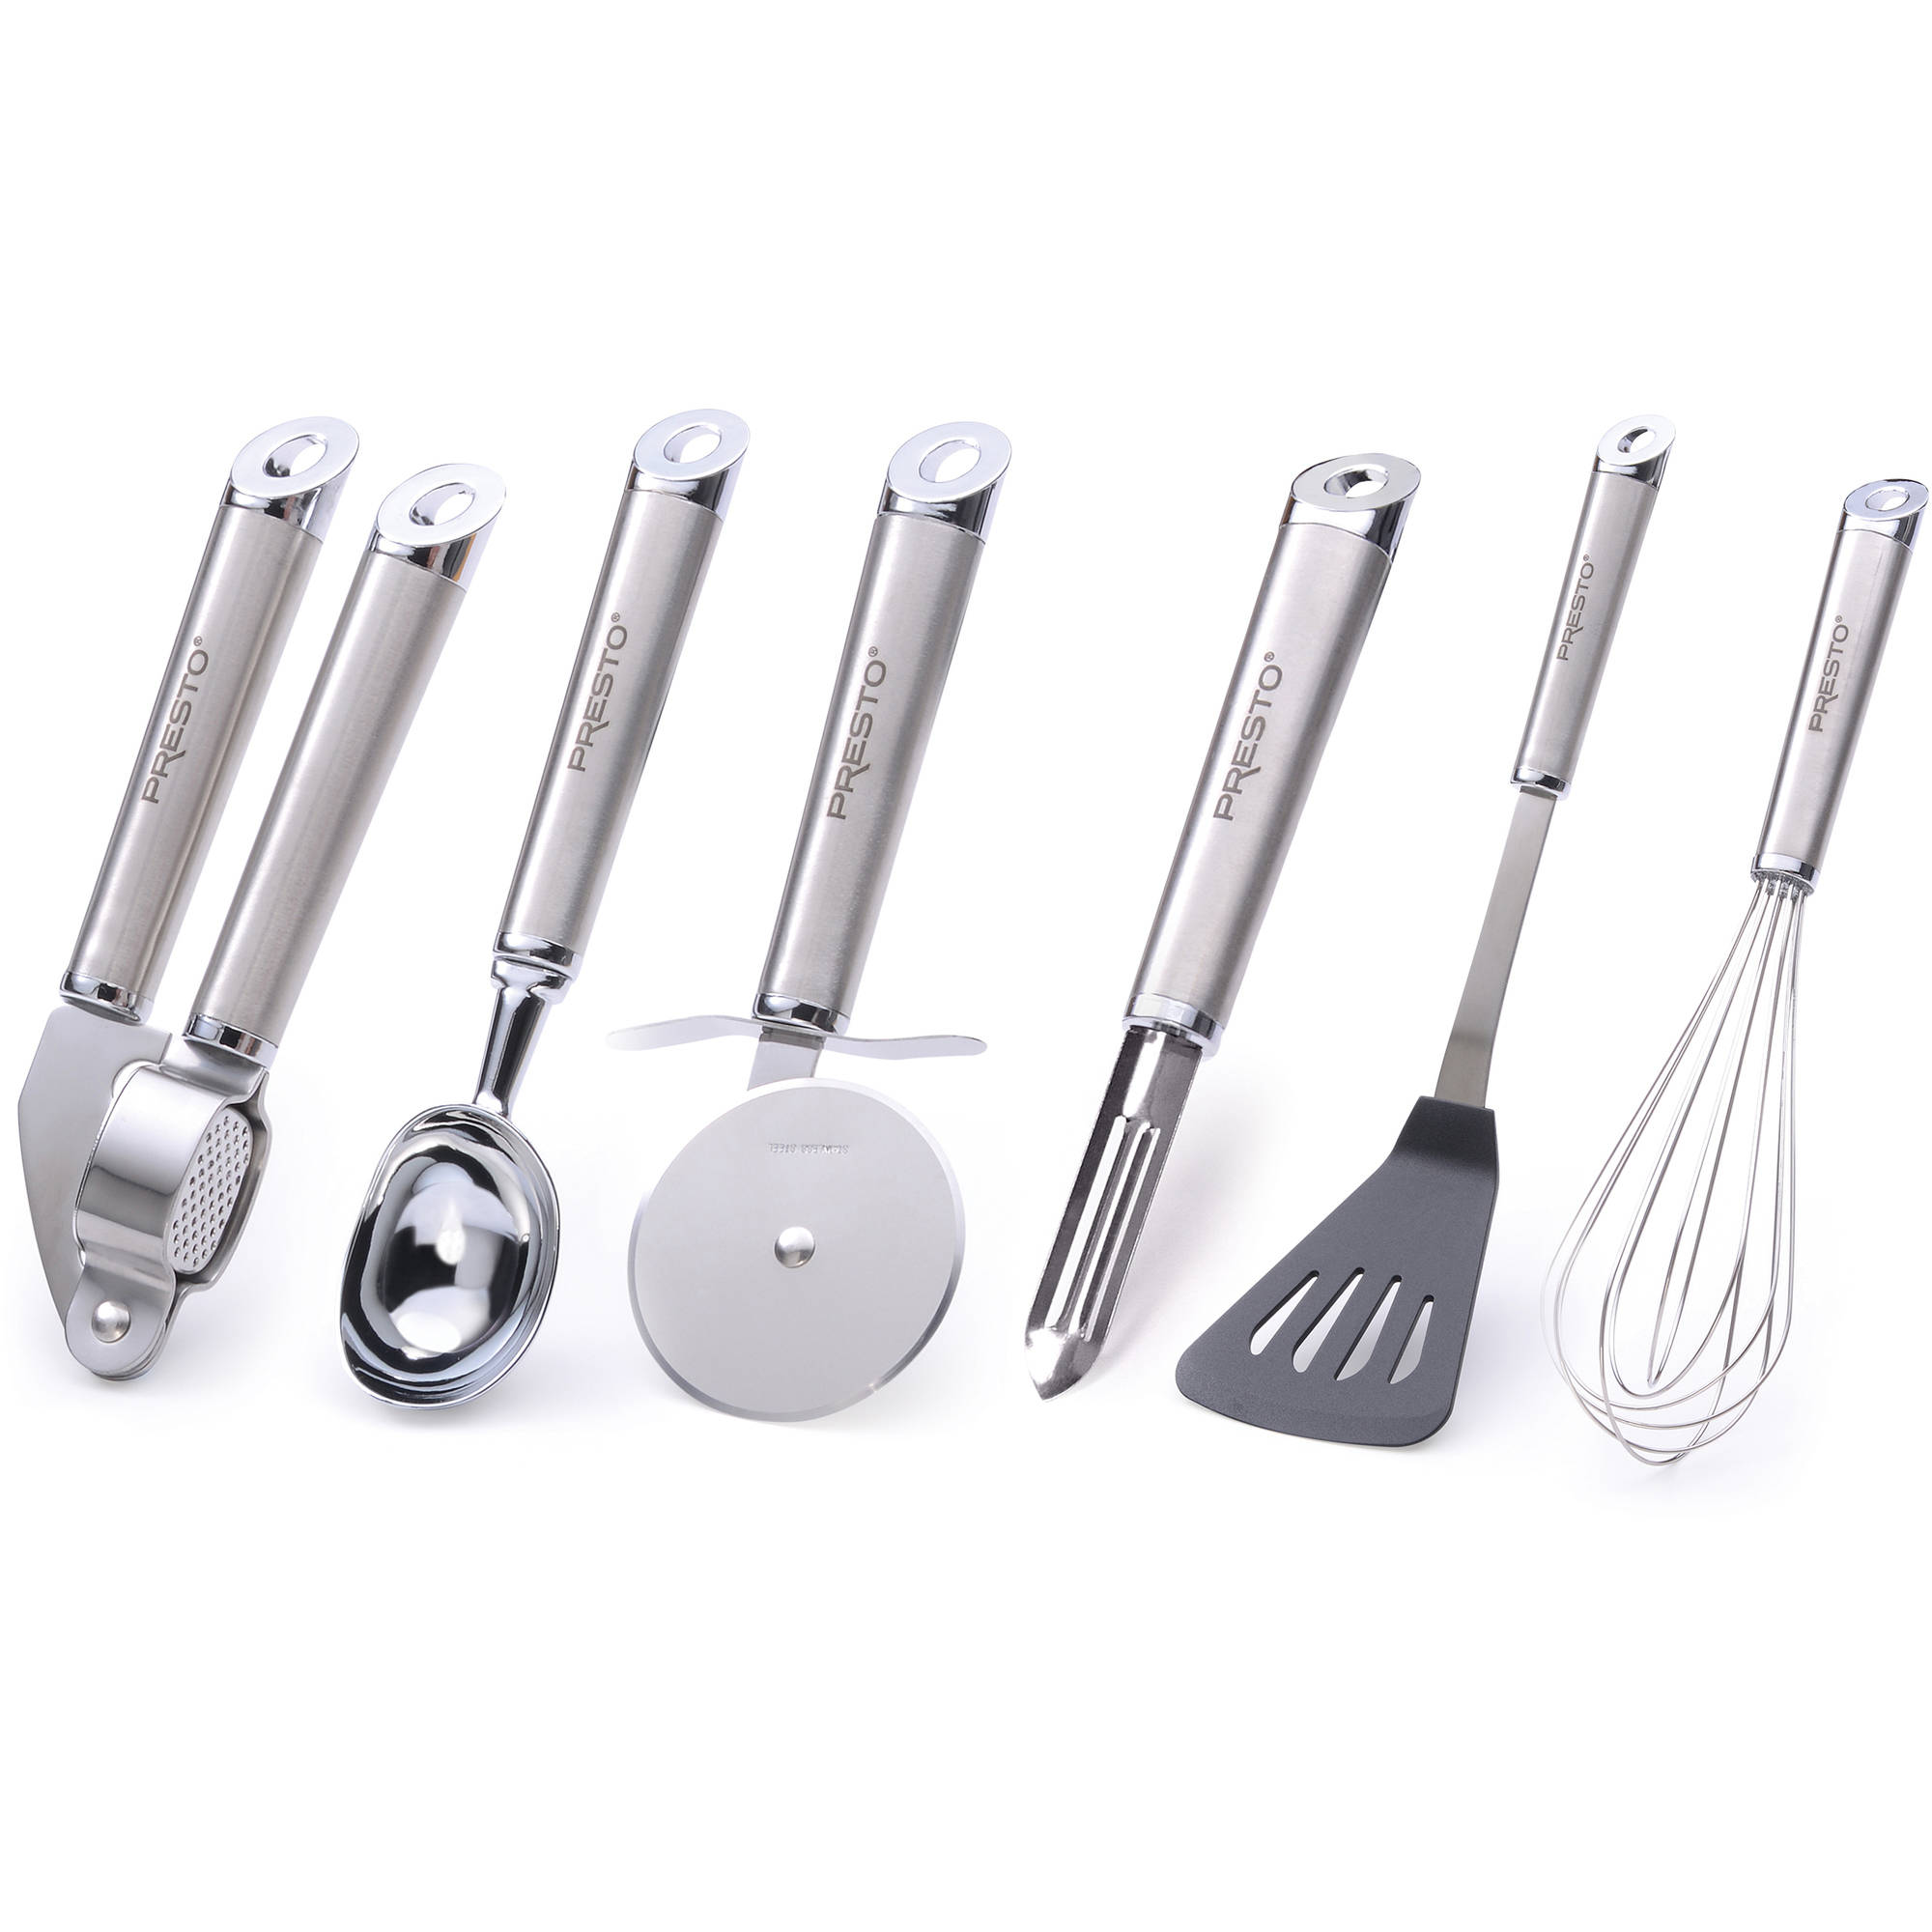 Presto 6-Piece Stainless Steel Gadget Set